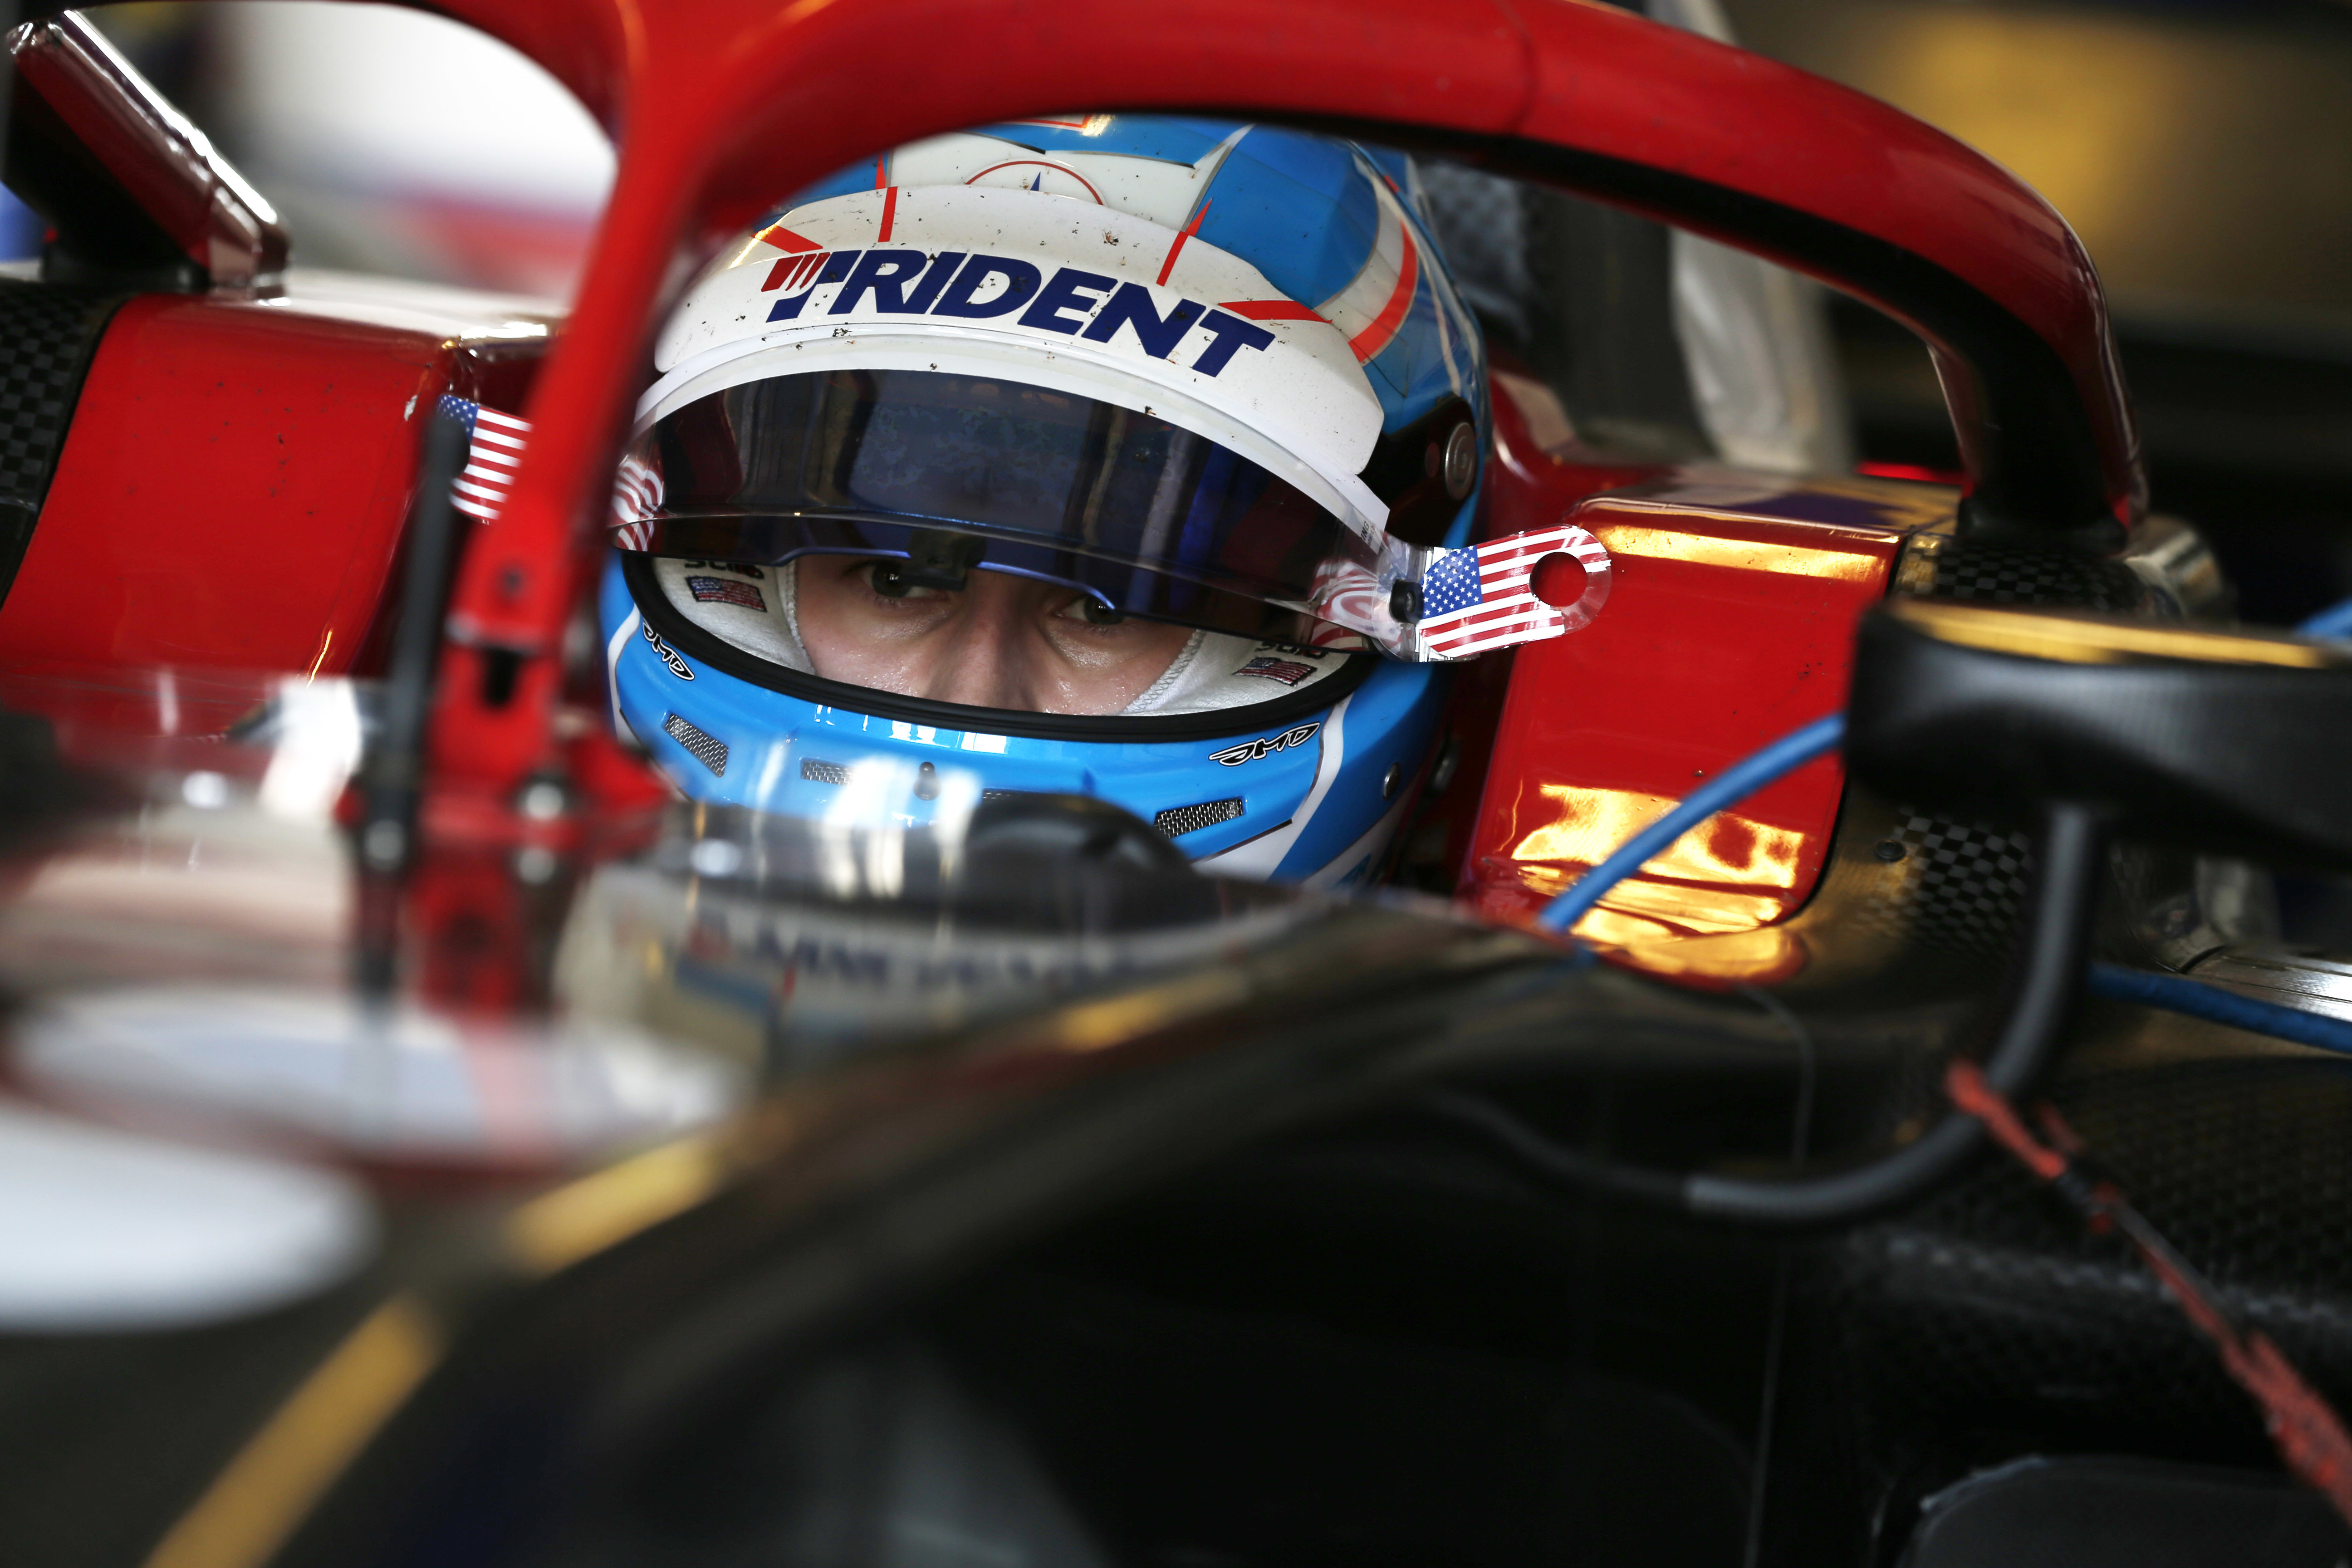 Trident call up Ryan Tveter for F2 debut as Ralph Boschung leaves